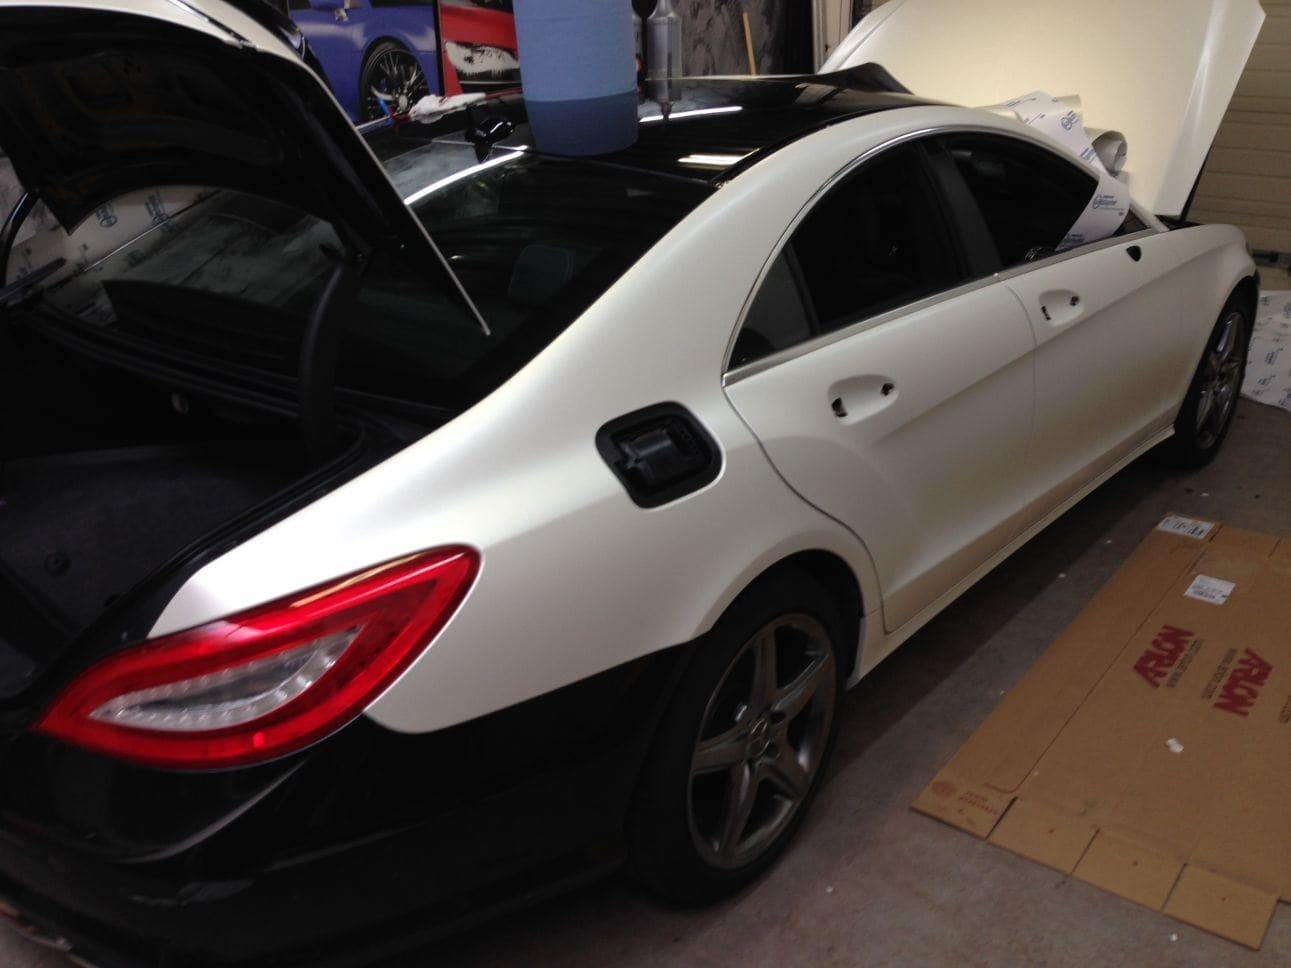 Mercedes CLS met White Satin Pearl Wrap, Carwrapping door Wrapmyride.nu Foto-nr:6178, ©2021